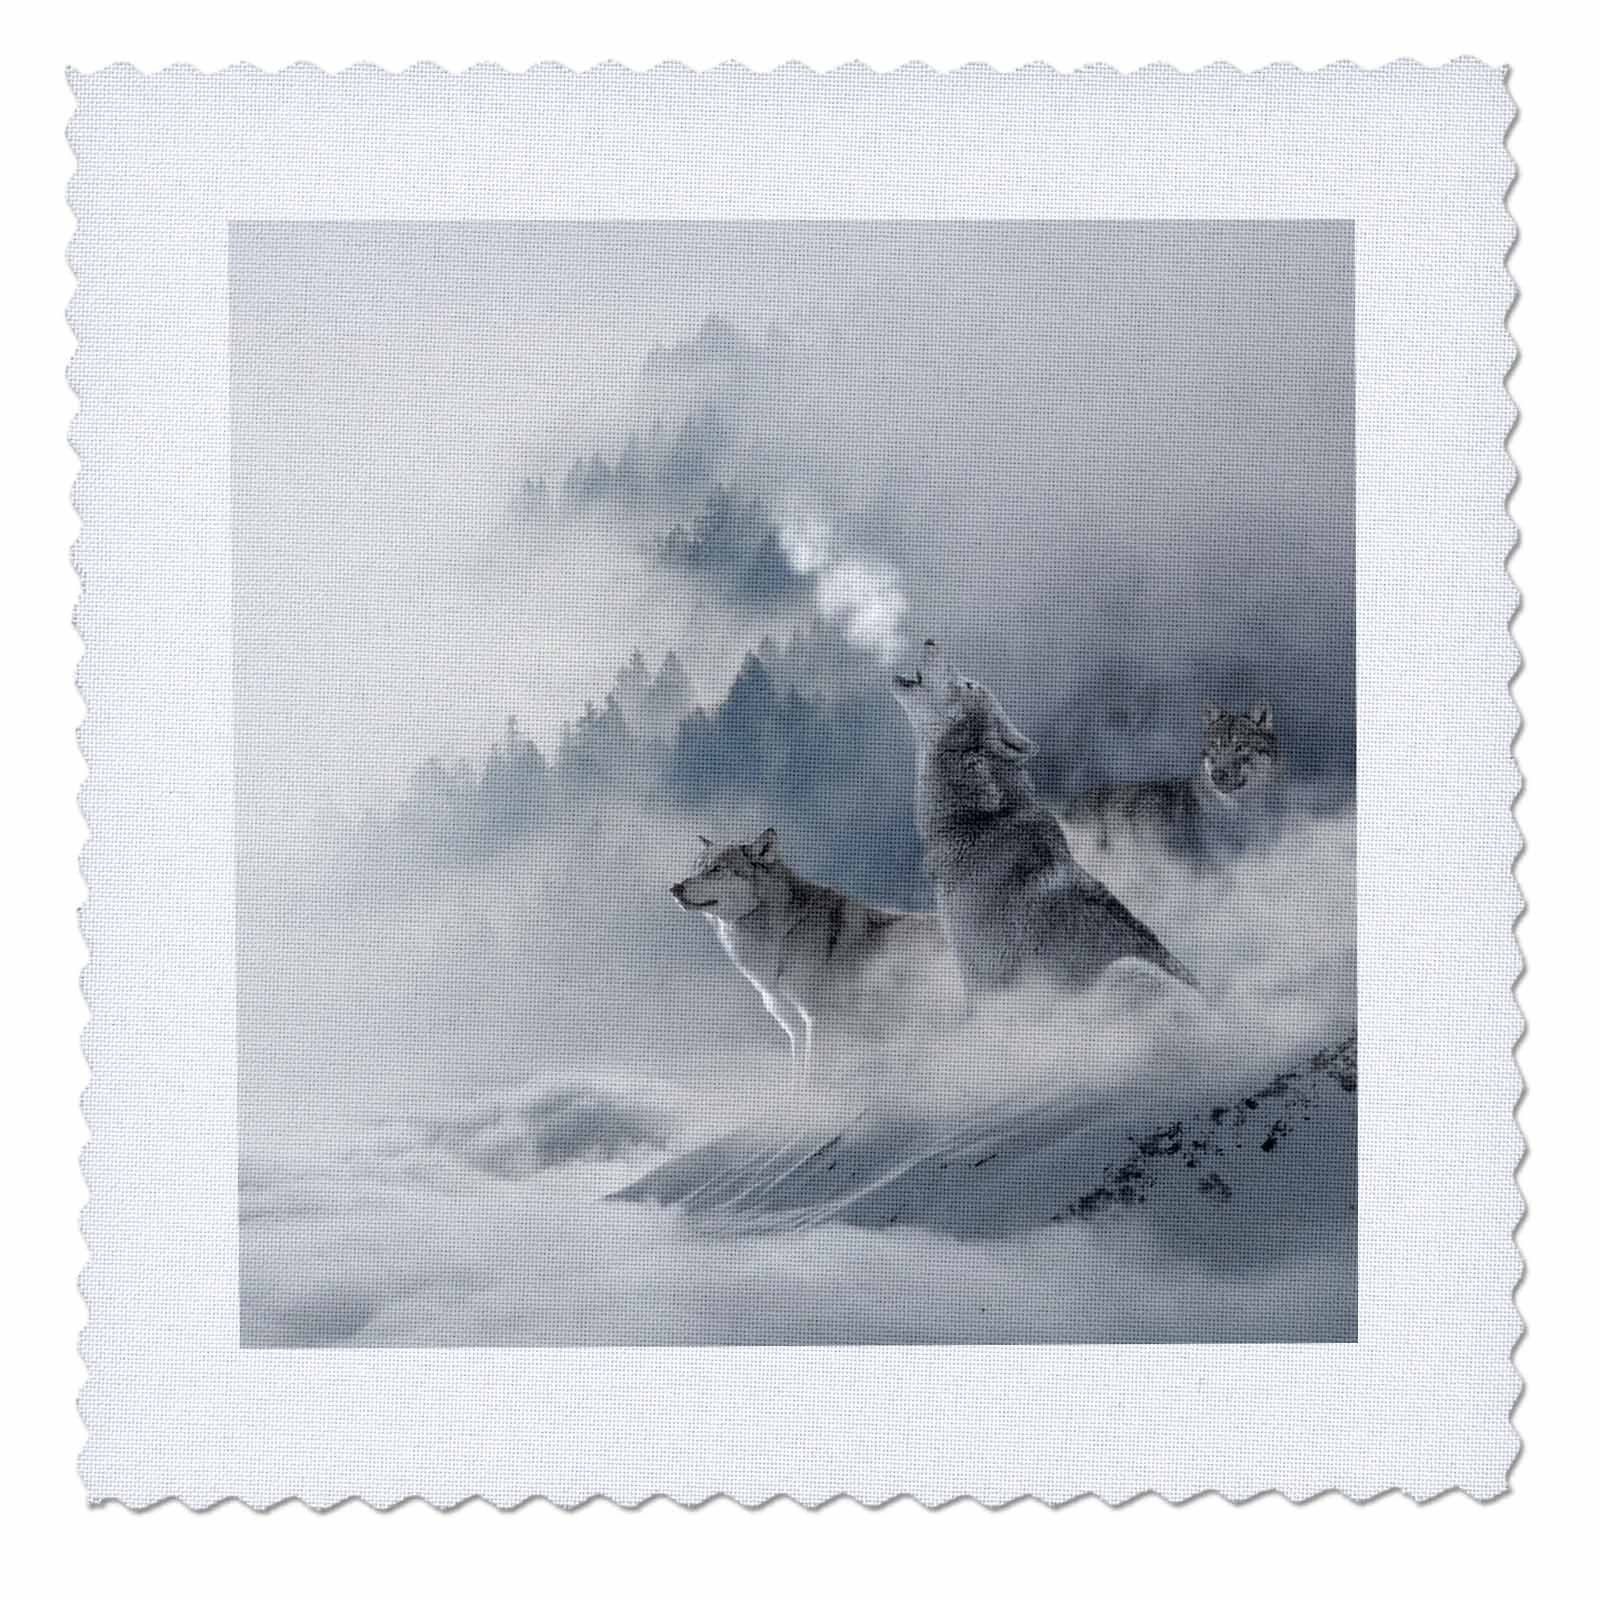 3dRose qs_268975_4 Crying Wolves in Winter Mountains Fantasy Wolf Animal Photography Quilt Square, 12'' x 12'' by 3dRose (Image #1)